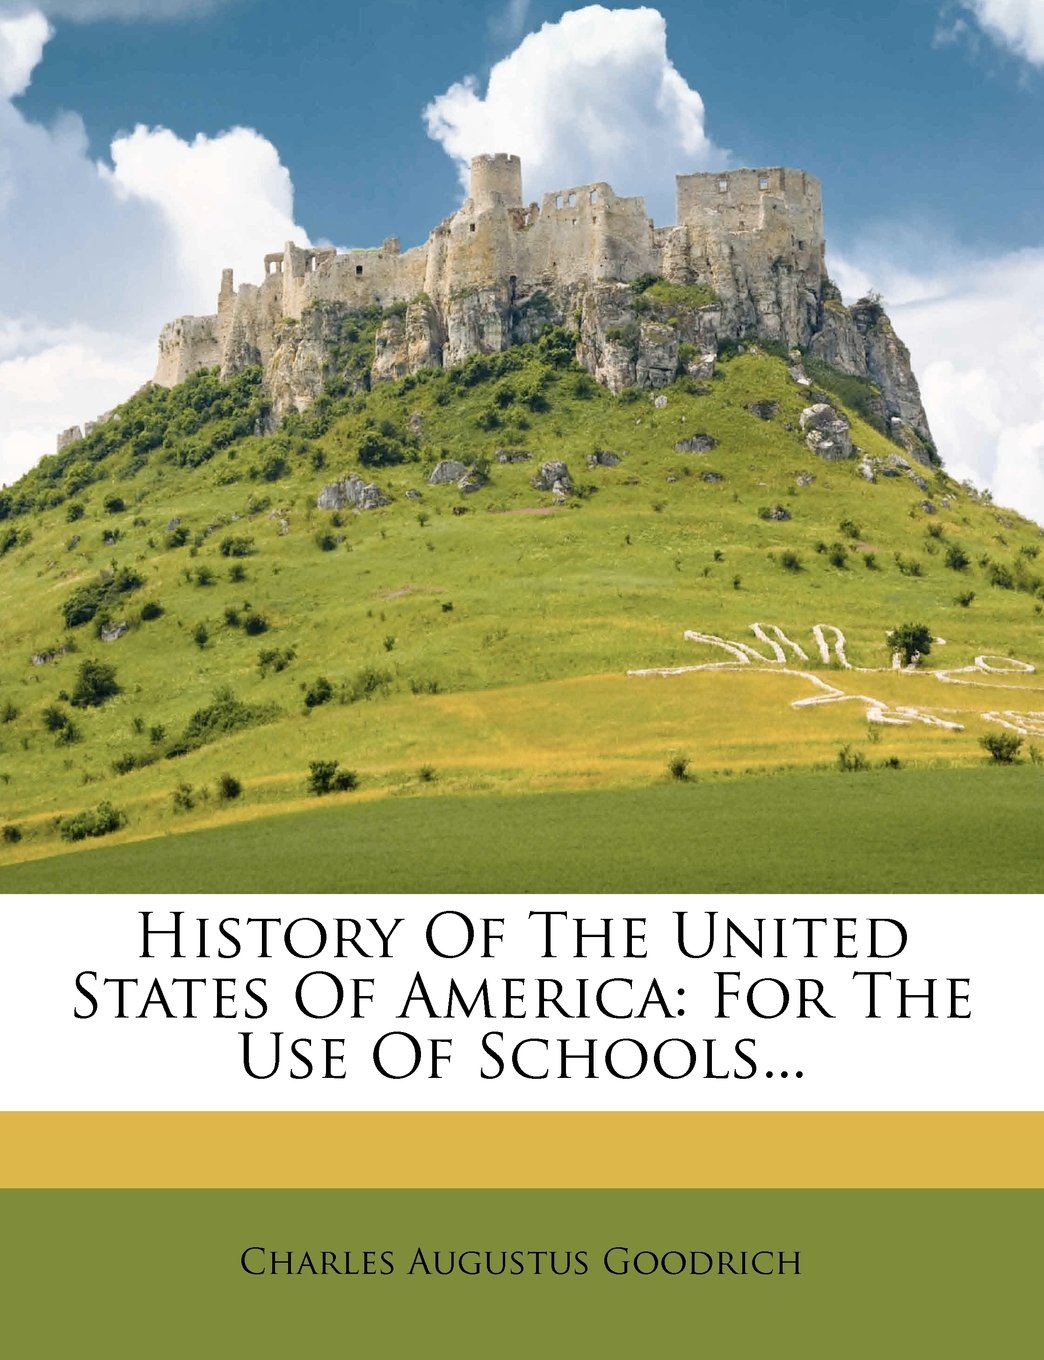 Read Online History Of The United States Of America: For The Use Of Schools... pdf epub